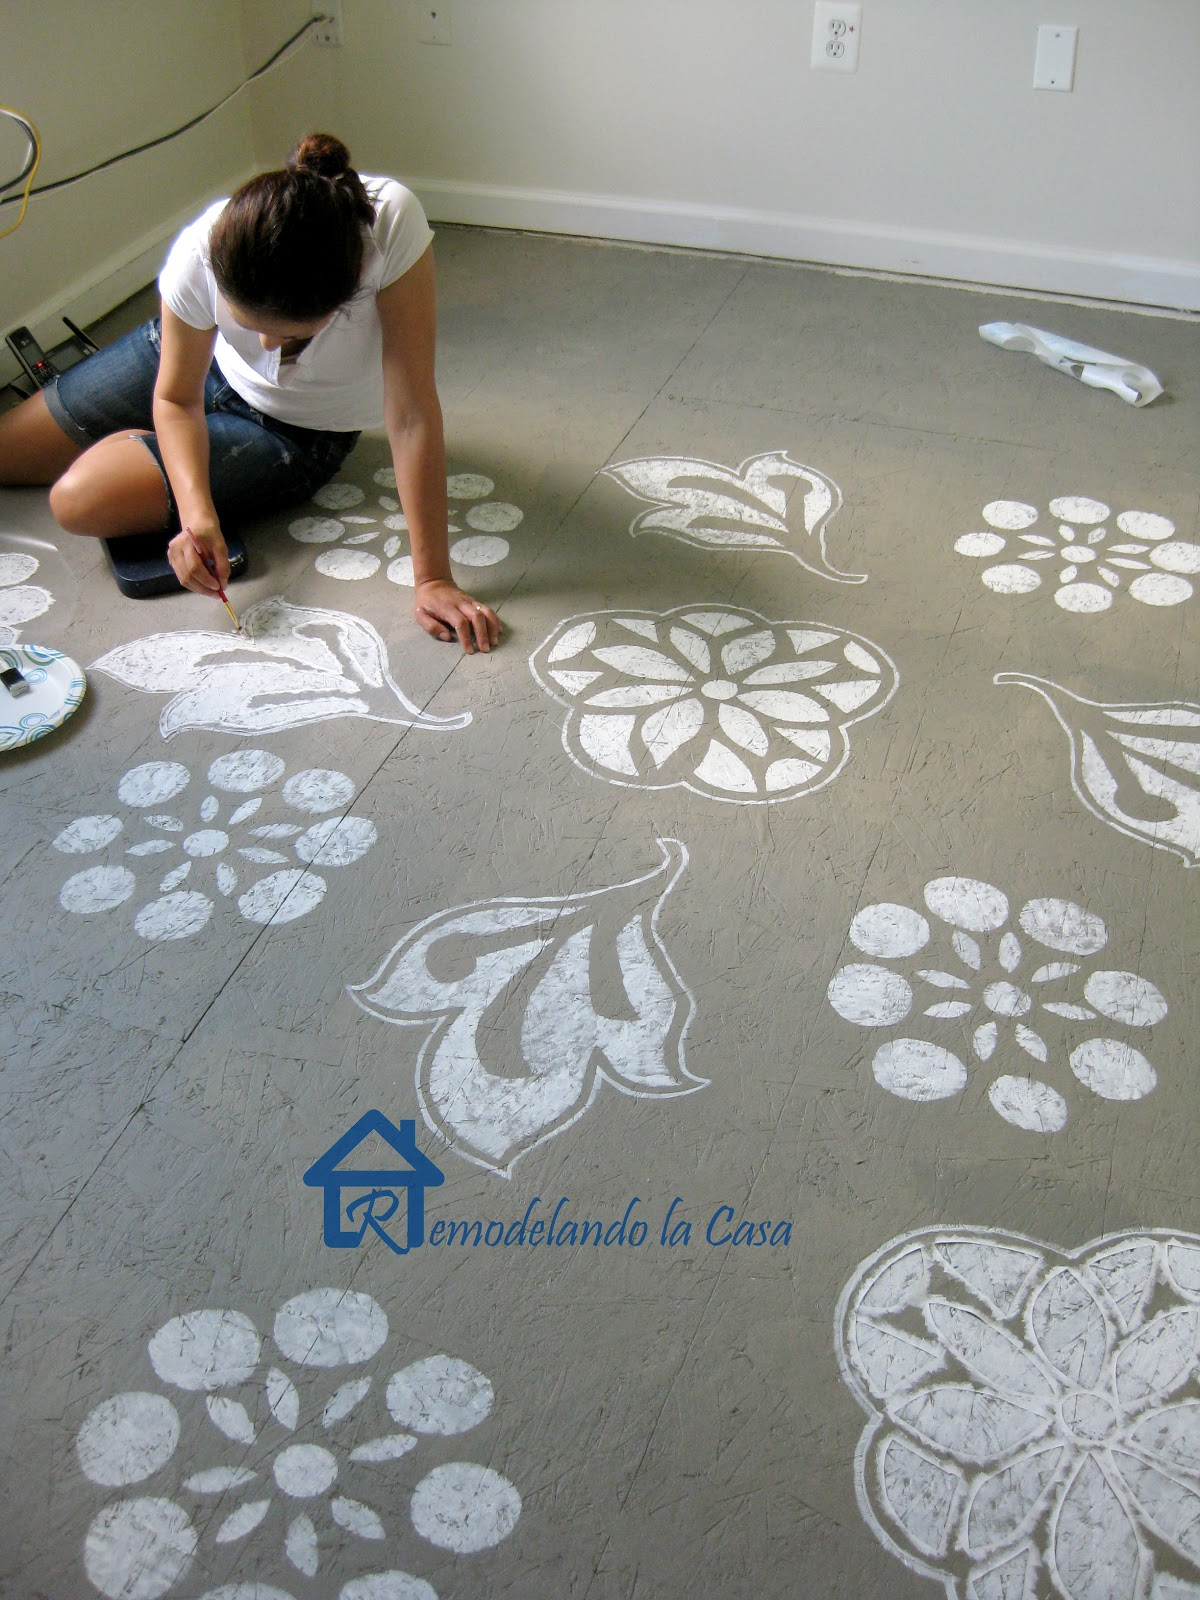 Diy painted designs on floor remodelando la casa for Painting plywood floors ideas